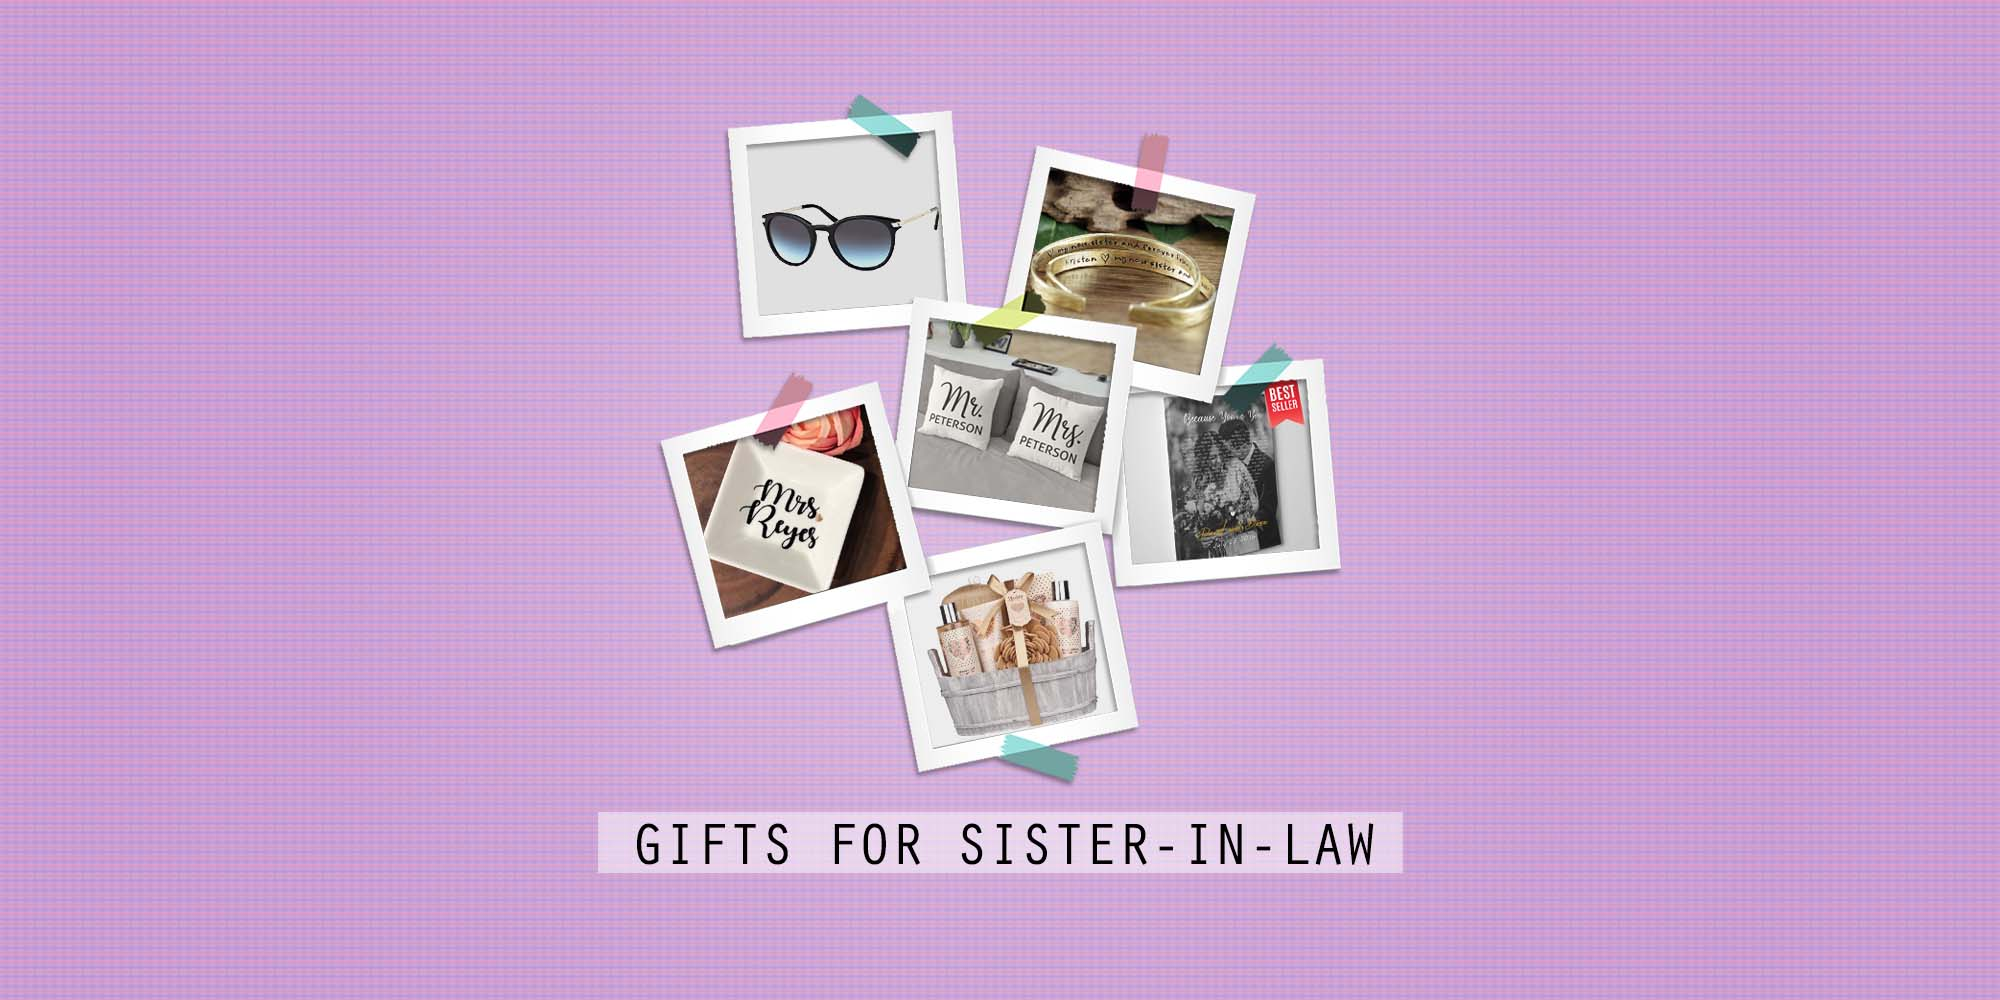 33+ Best Gifts For Sister-In-Law That Every Bonus Sister Will Love (2021)